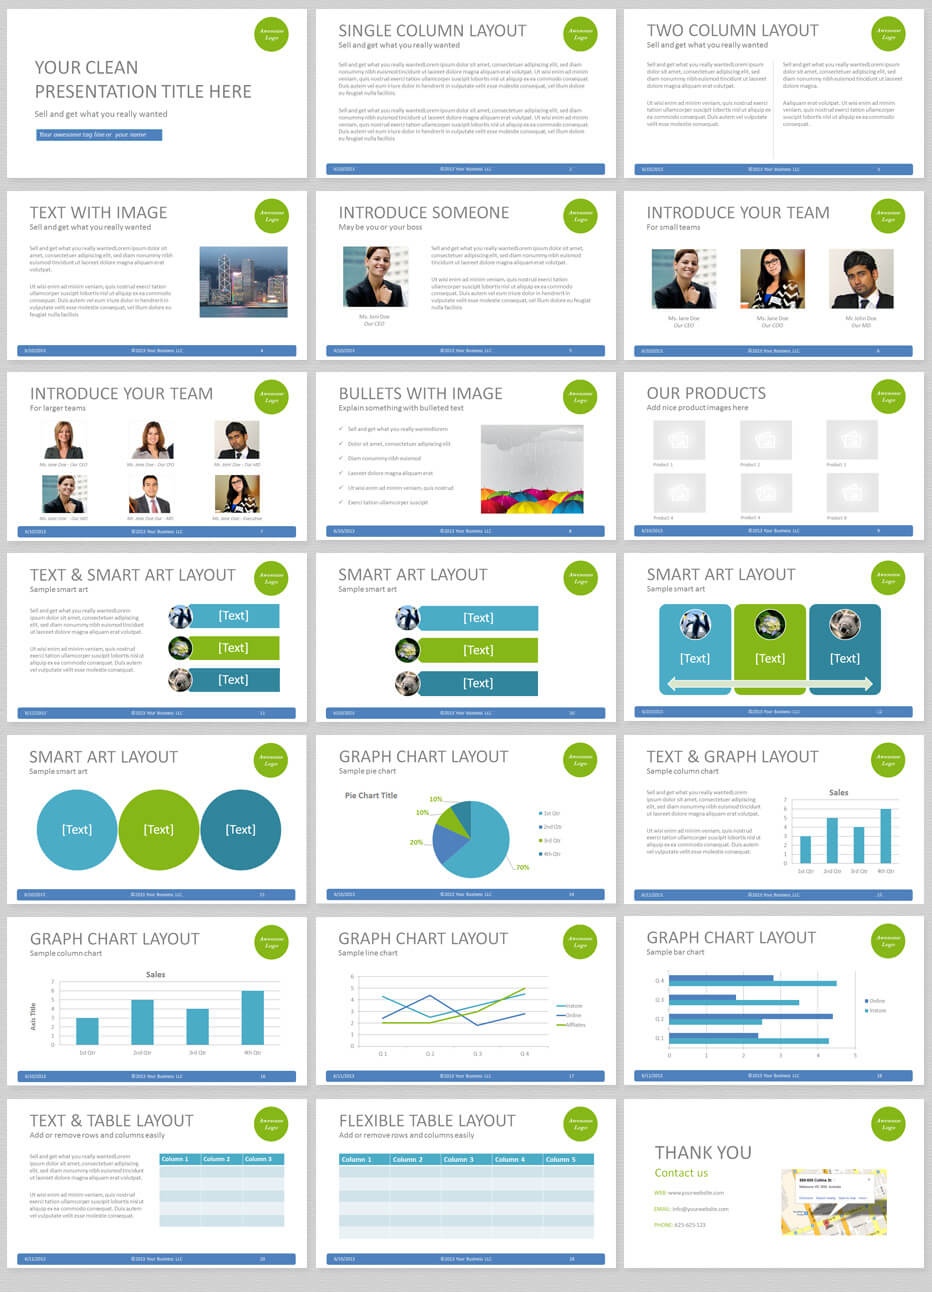 Elegant Pictures Of Ppt 2007 Templates Free Download Simple Regarding Powerpoint 2007 Template Free Download